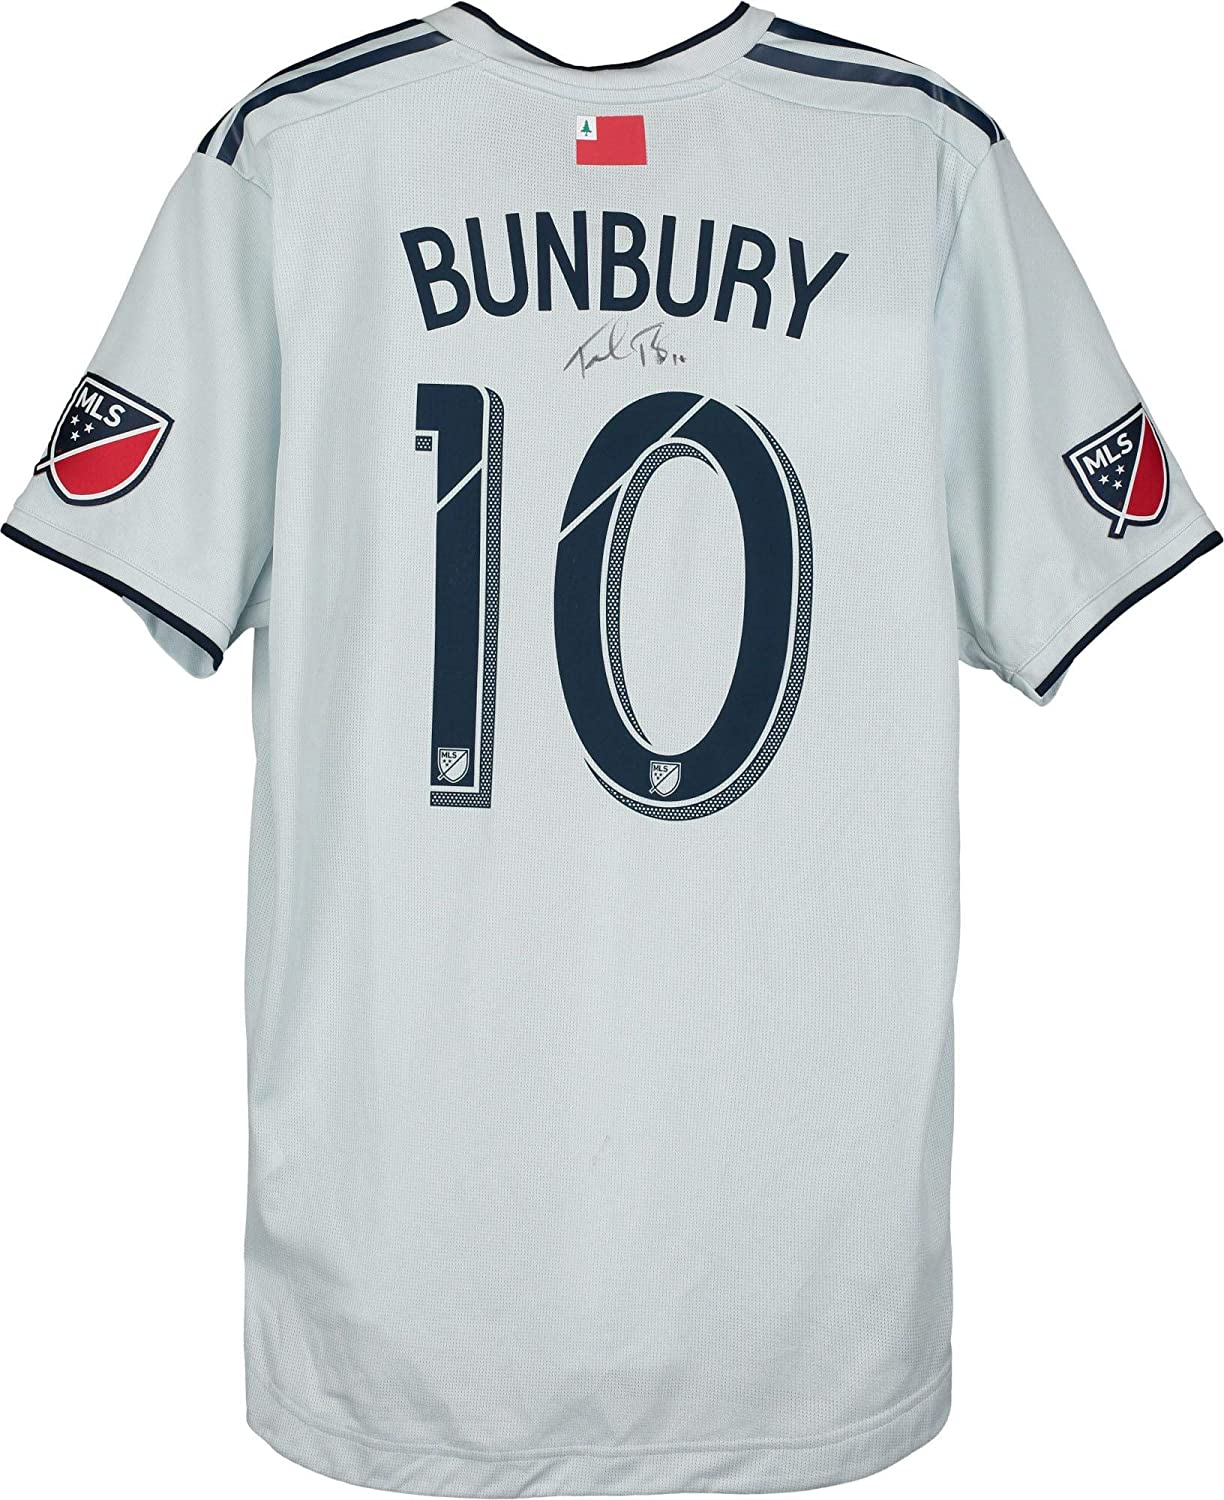 Teal Bunbury New England Revolution Autographed Match-Used #10 White Jersey vs. Atlanta United FC on October 19, 2019 - Fanatics Authentic Certified